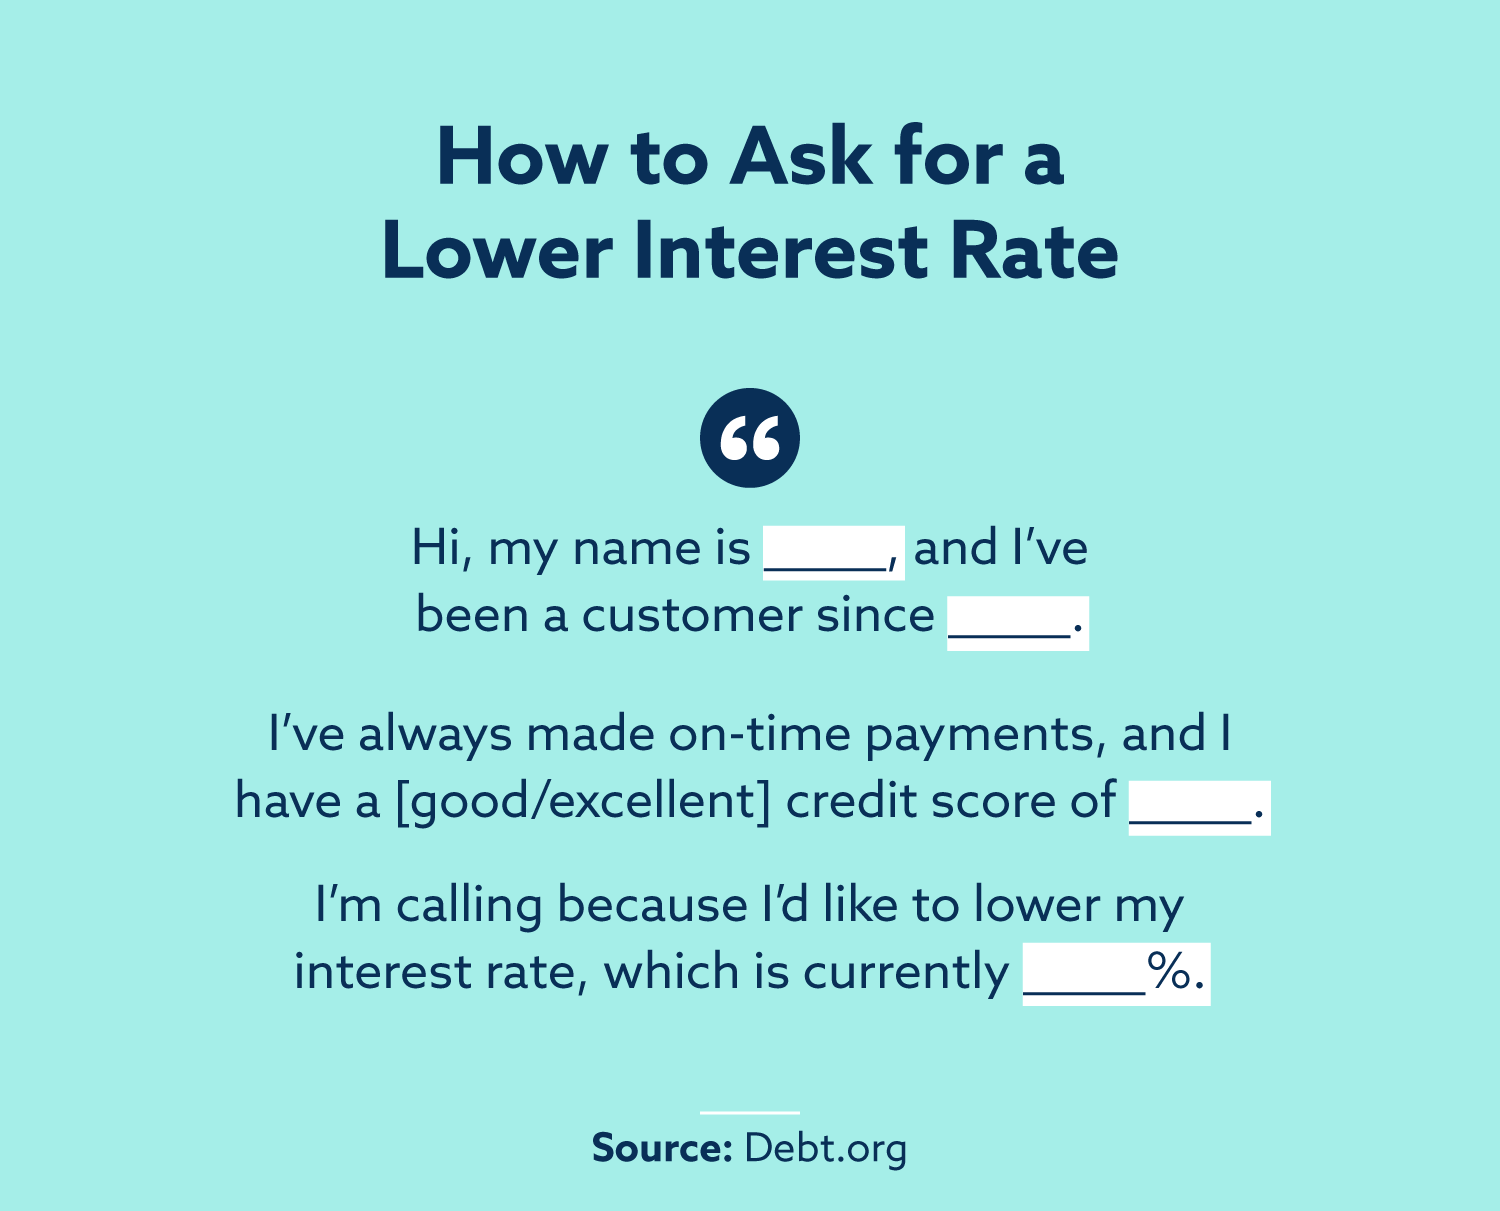 In a 2019 study, 81% of those who asked for a reduced interest rate received one. The average reduction was approximately 6 percentage points. Source: CompareCards.com